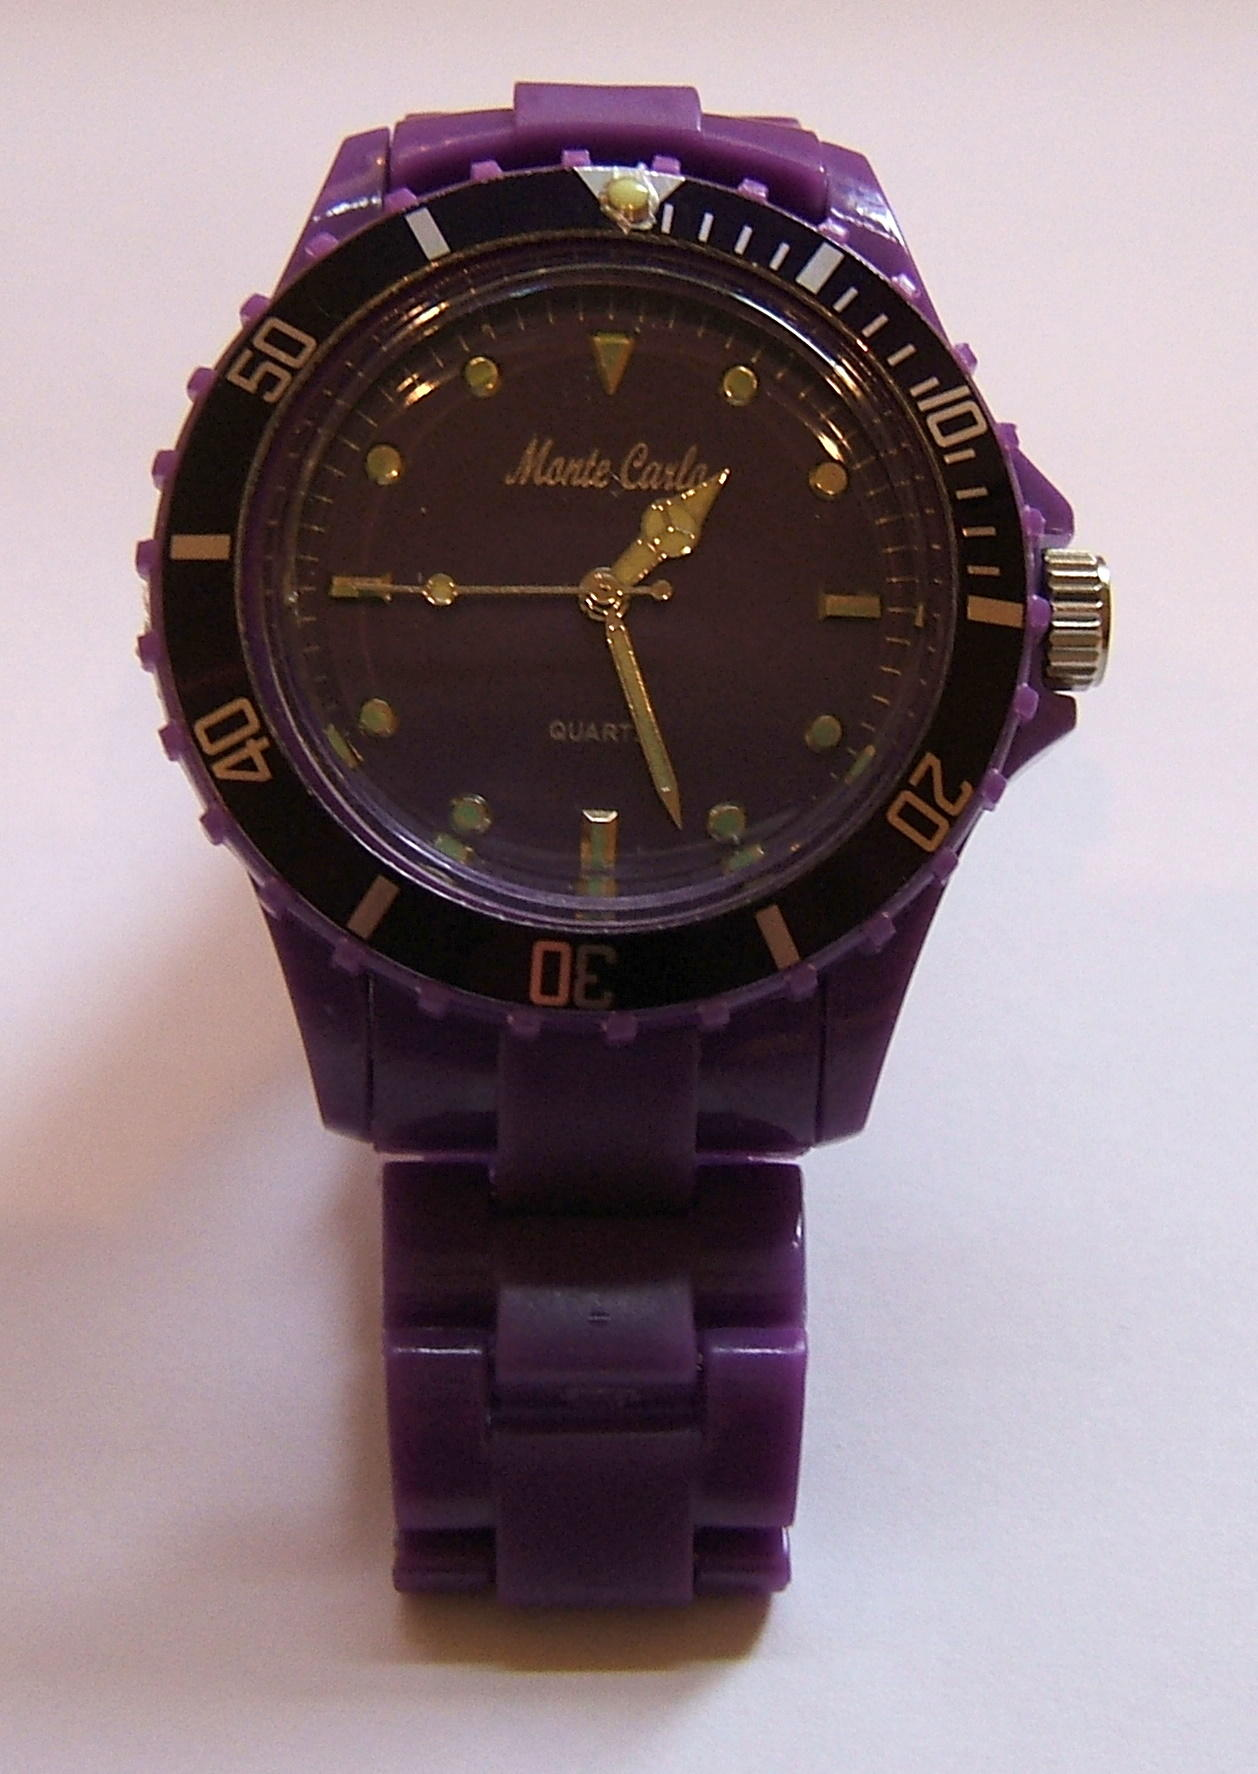 Monte Carlo Unisex Fashion Watch Purple